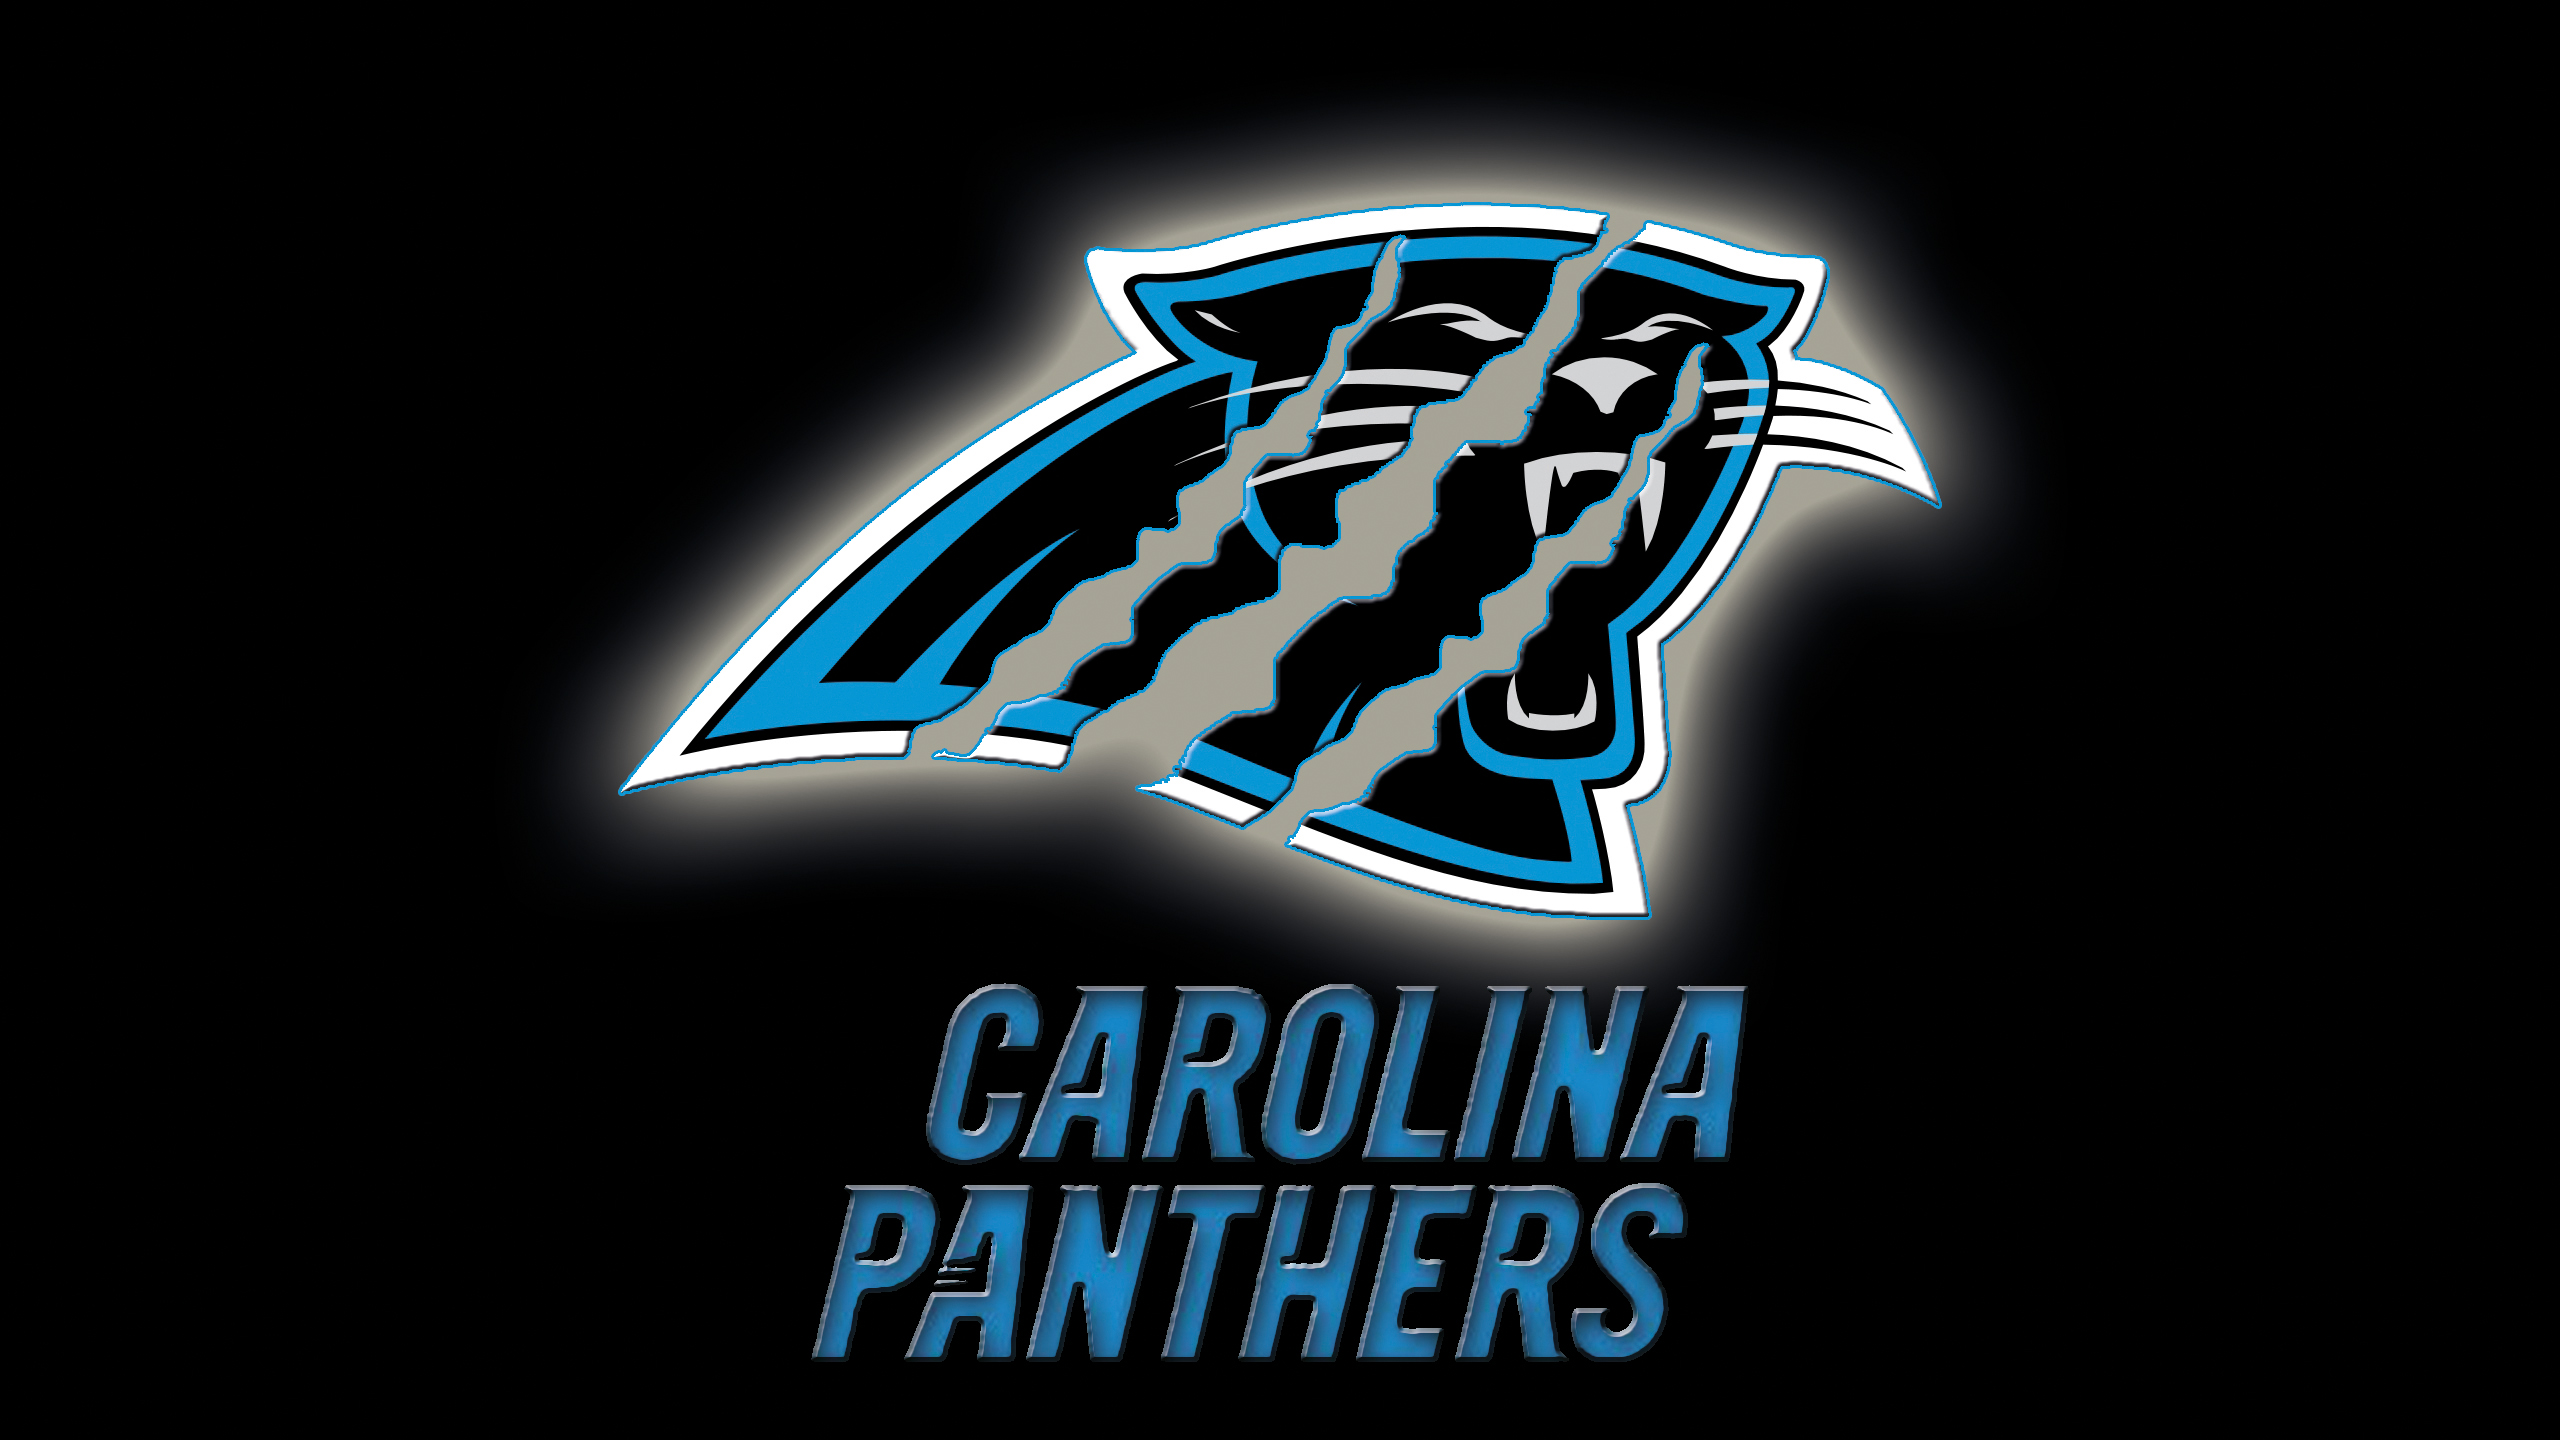 Carolina Panthers Logo Wallpaper HD | PixelsTalk Net